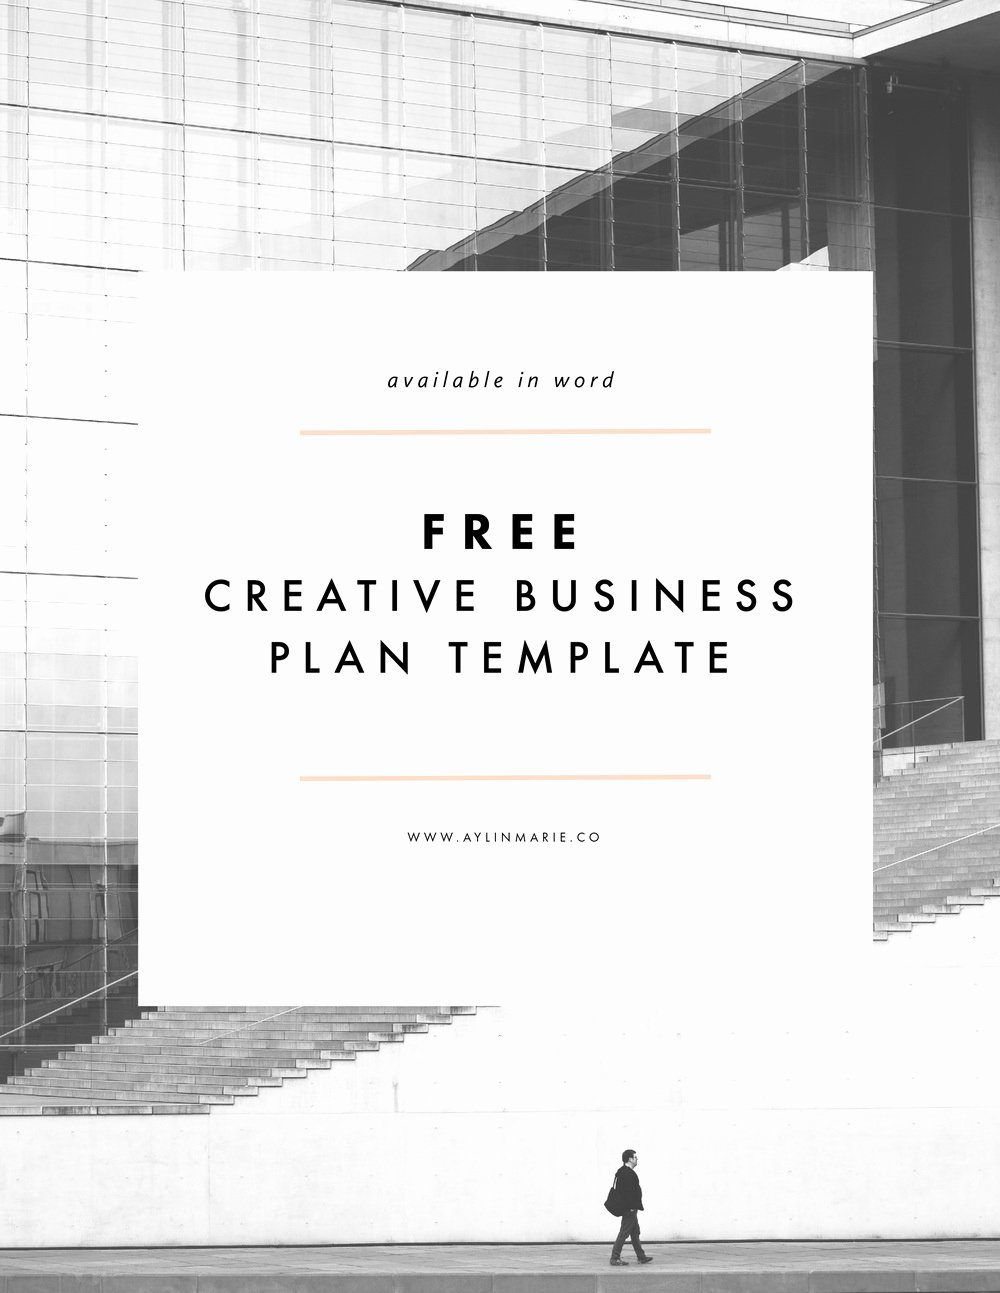 Creative Business Plan Template Inspirational Freebie Creative Business Plan Template